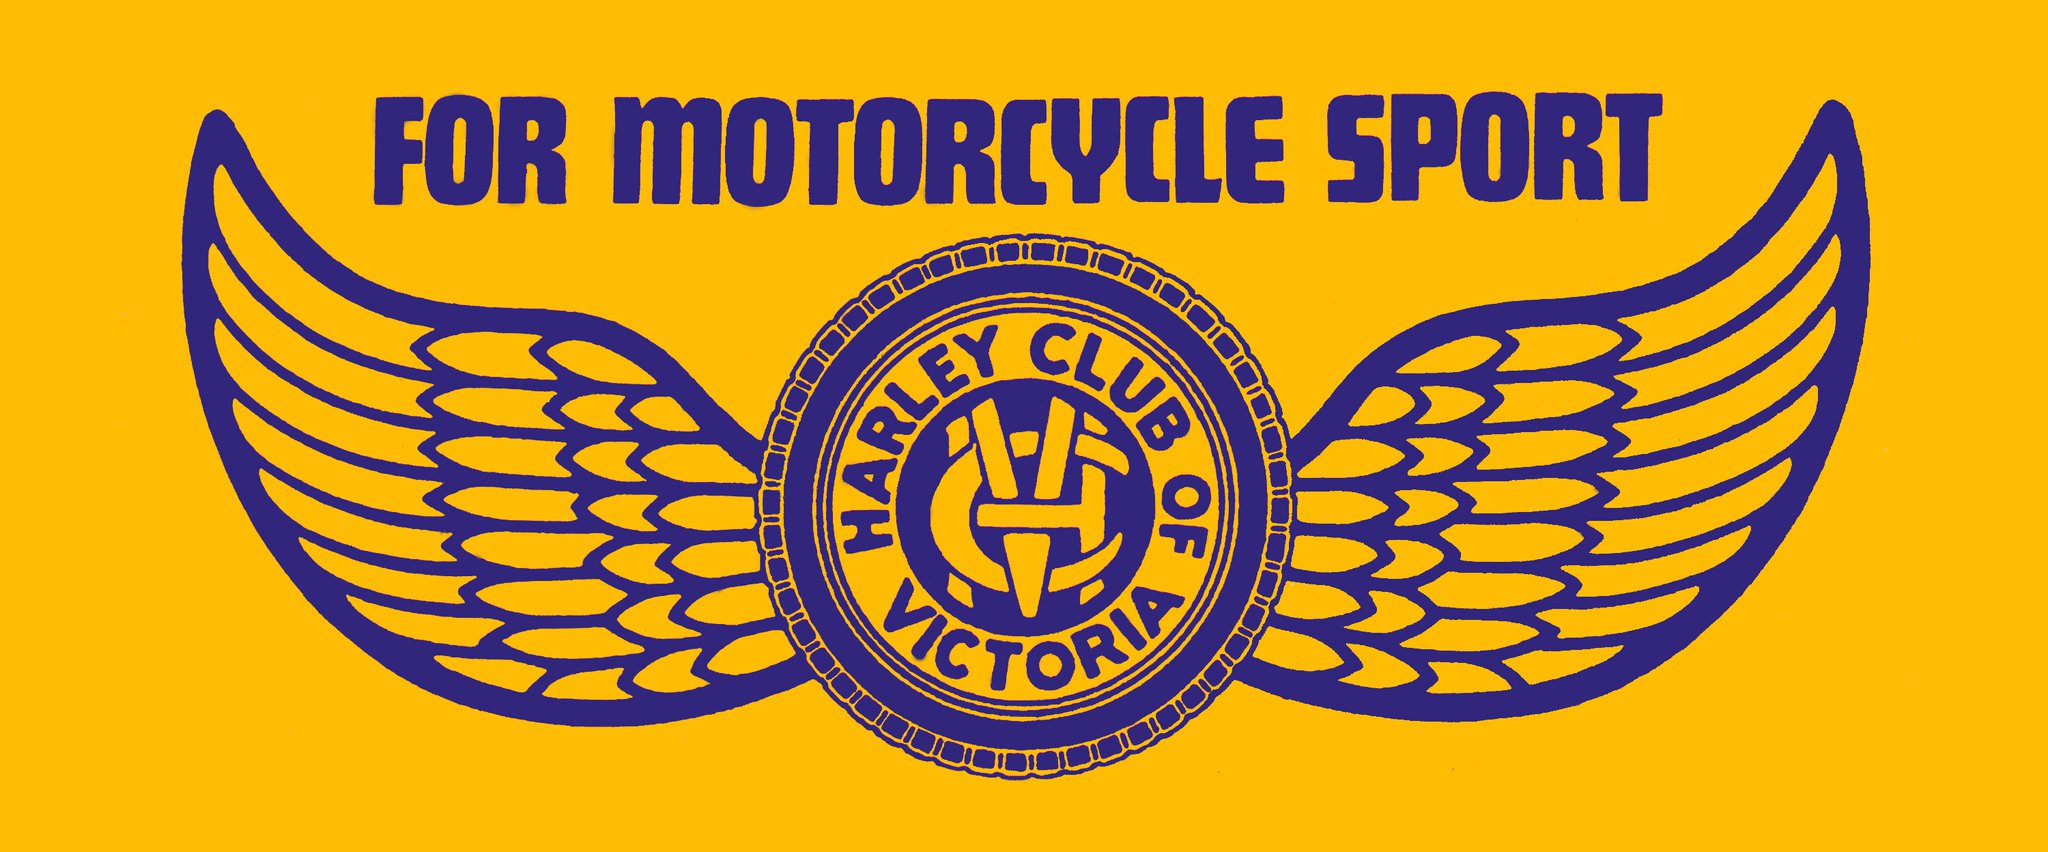 Harley Club Of Victoria